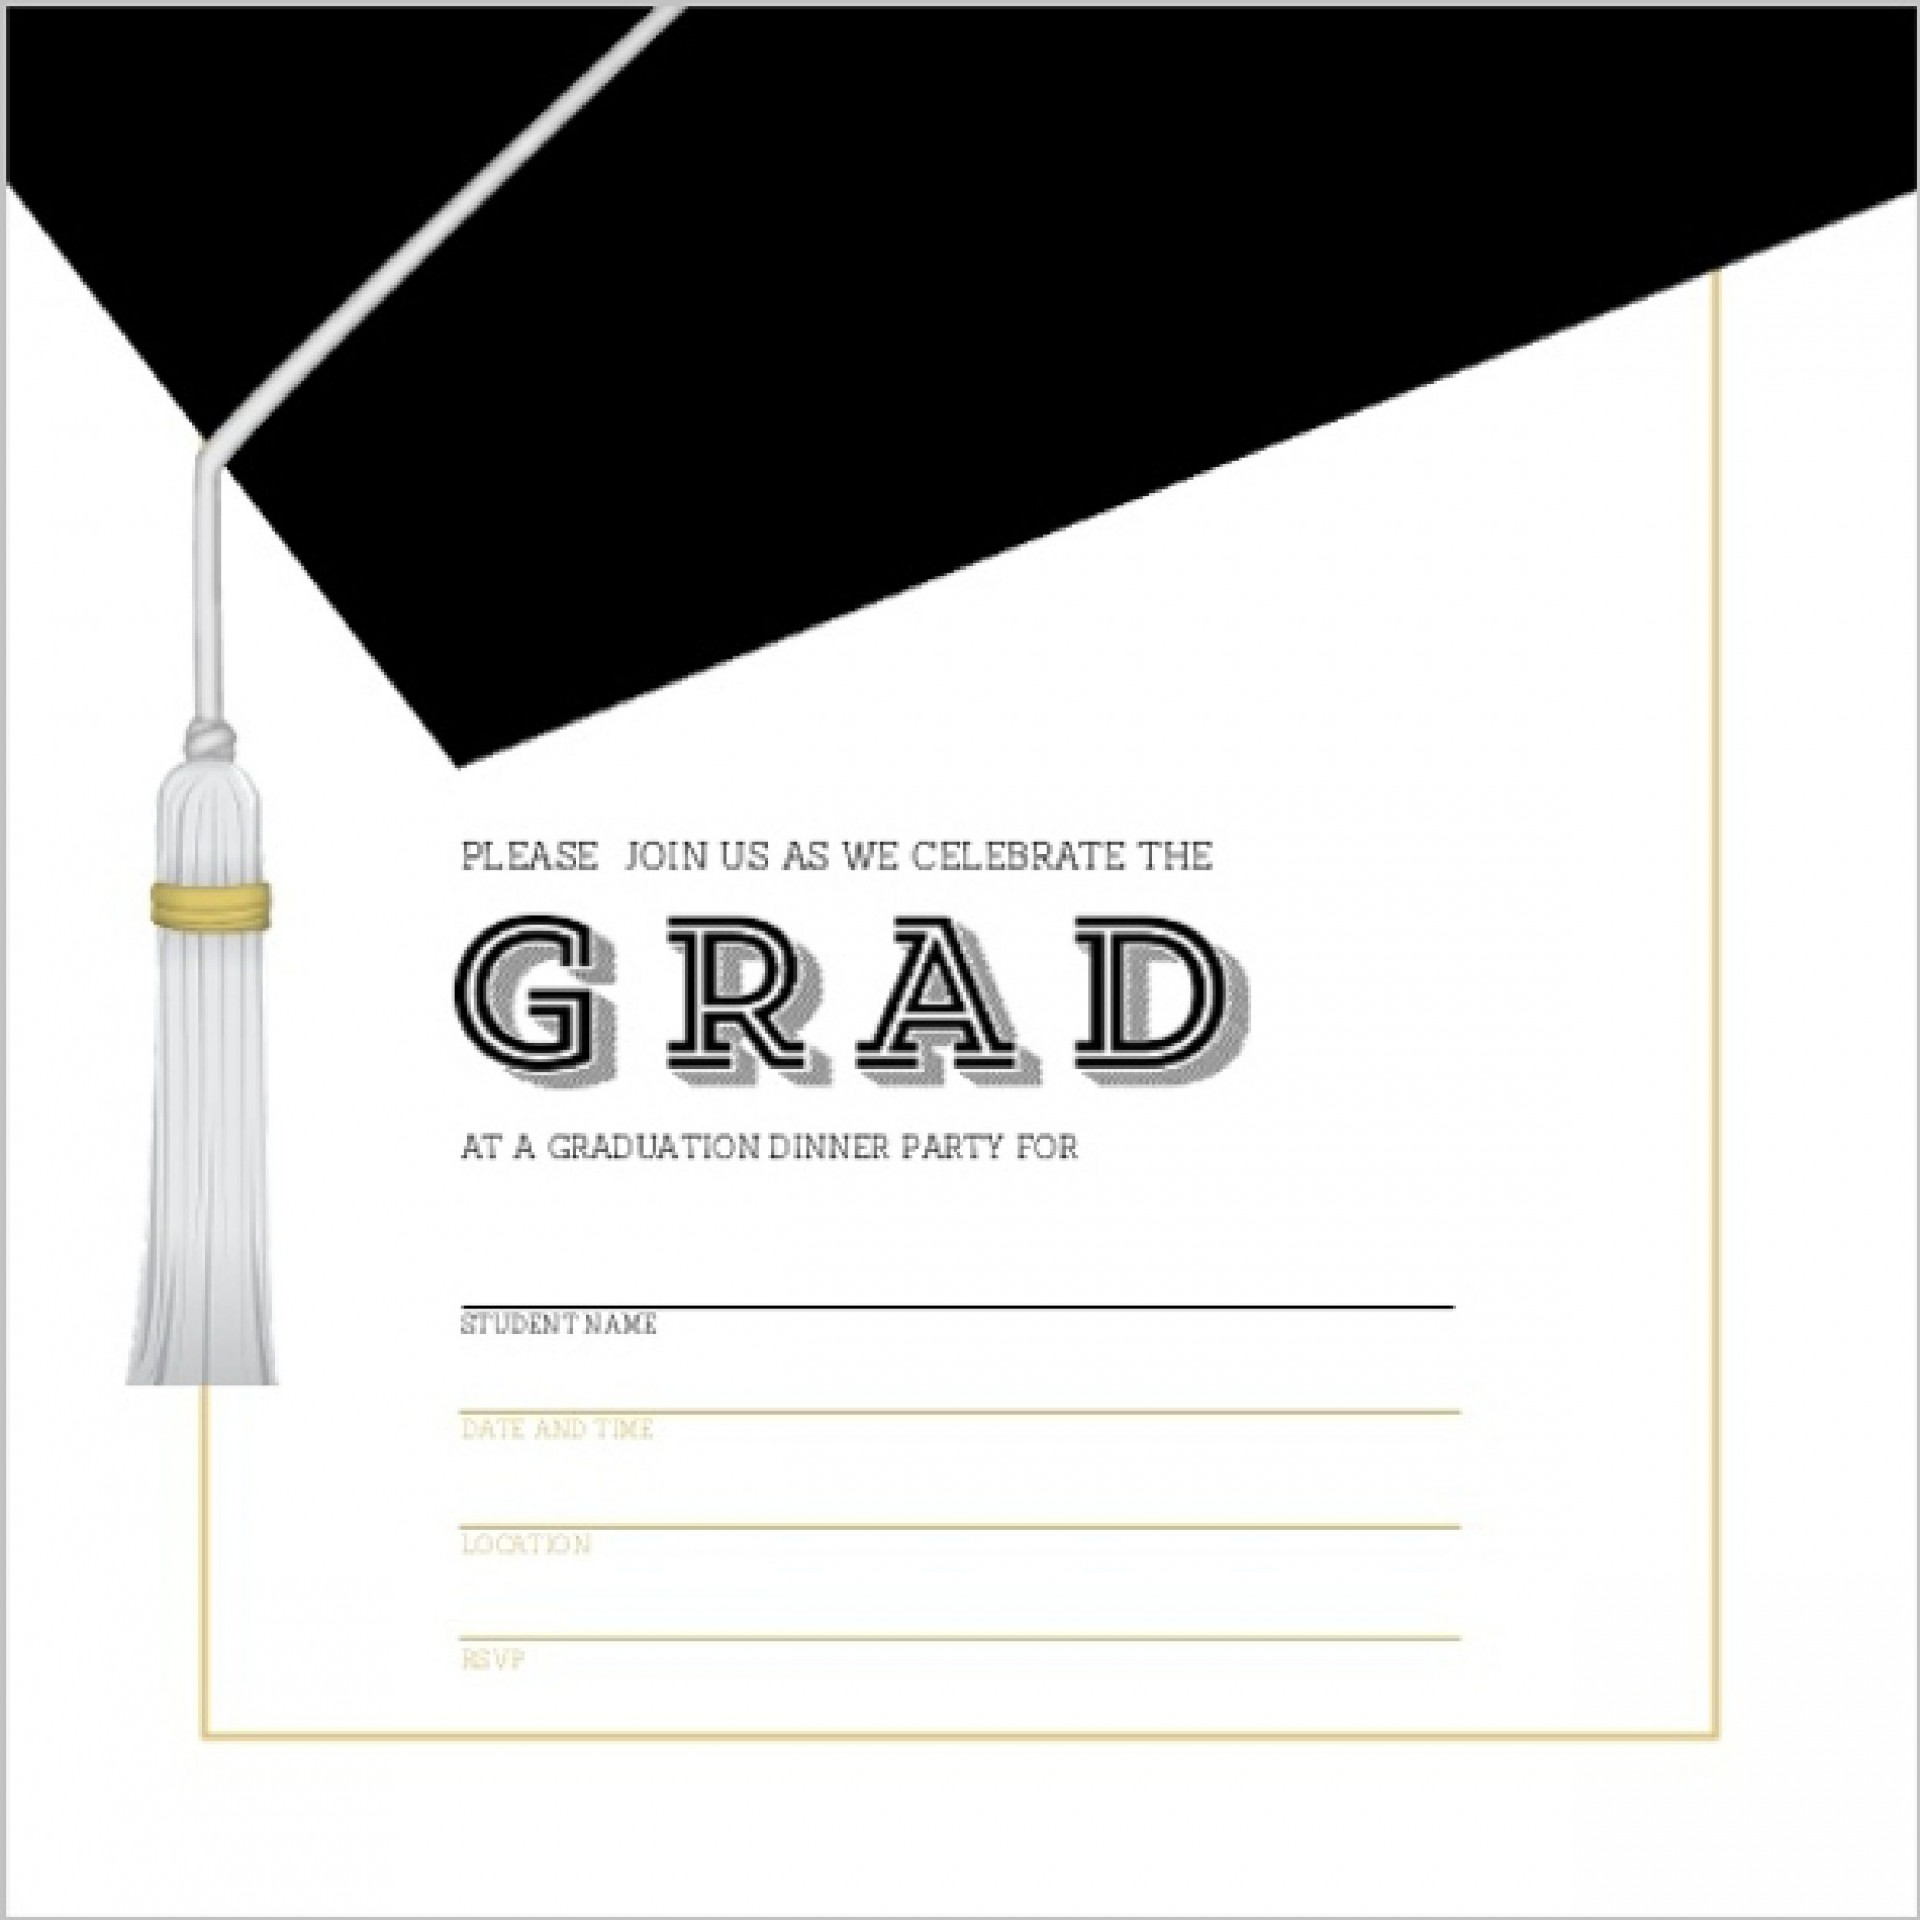 008 Awesome Graduation Invitation Template Free Picture  Maker Download Kindergarten1920